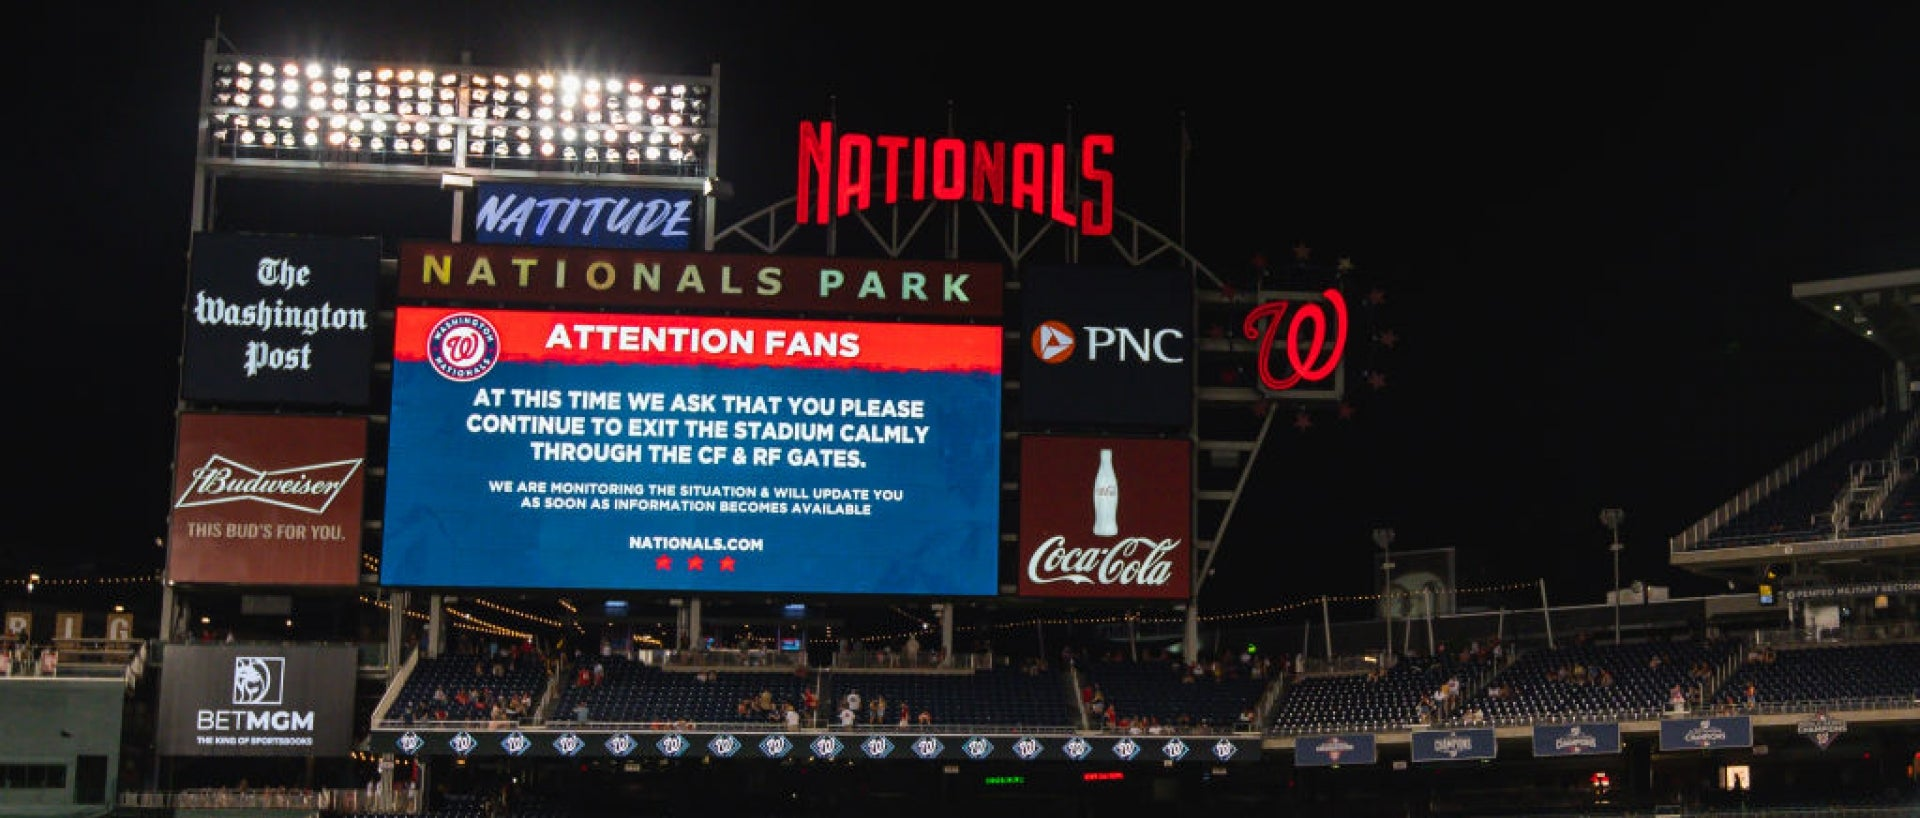 Digital sign in the Padres and Nationals' game that asks fans to exit slowly